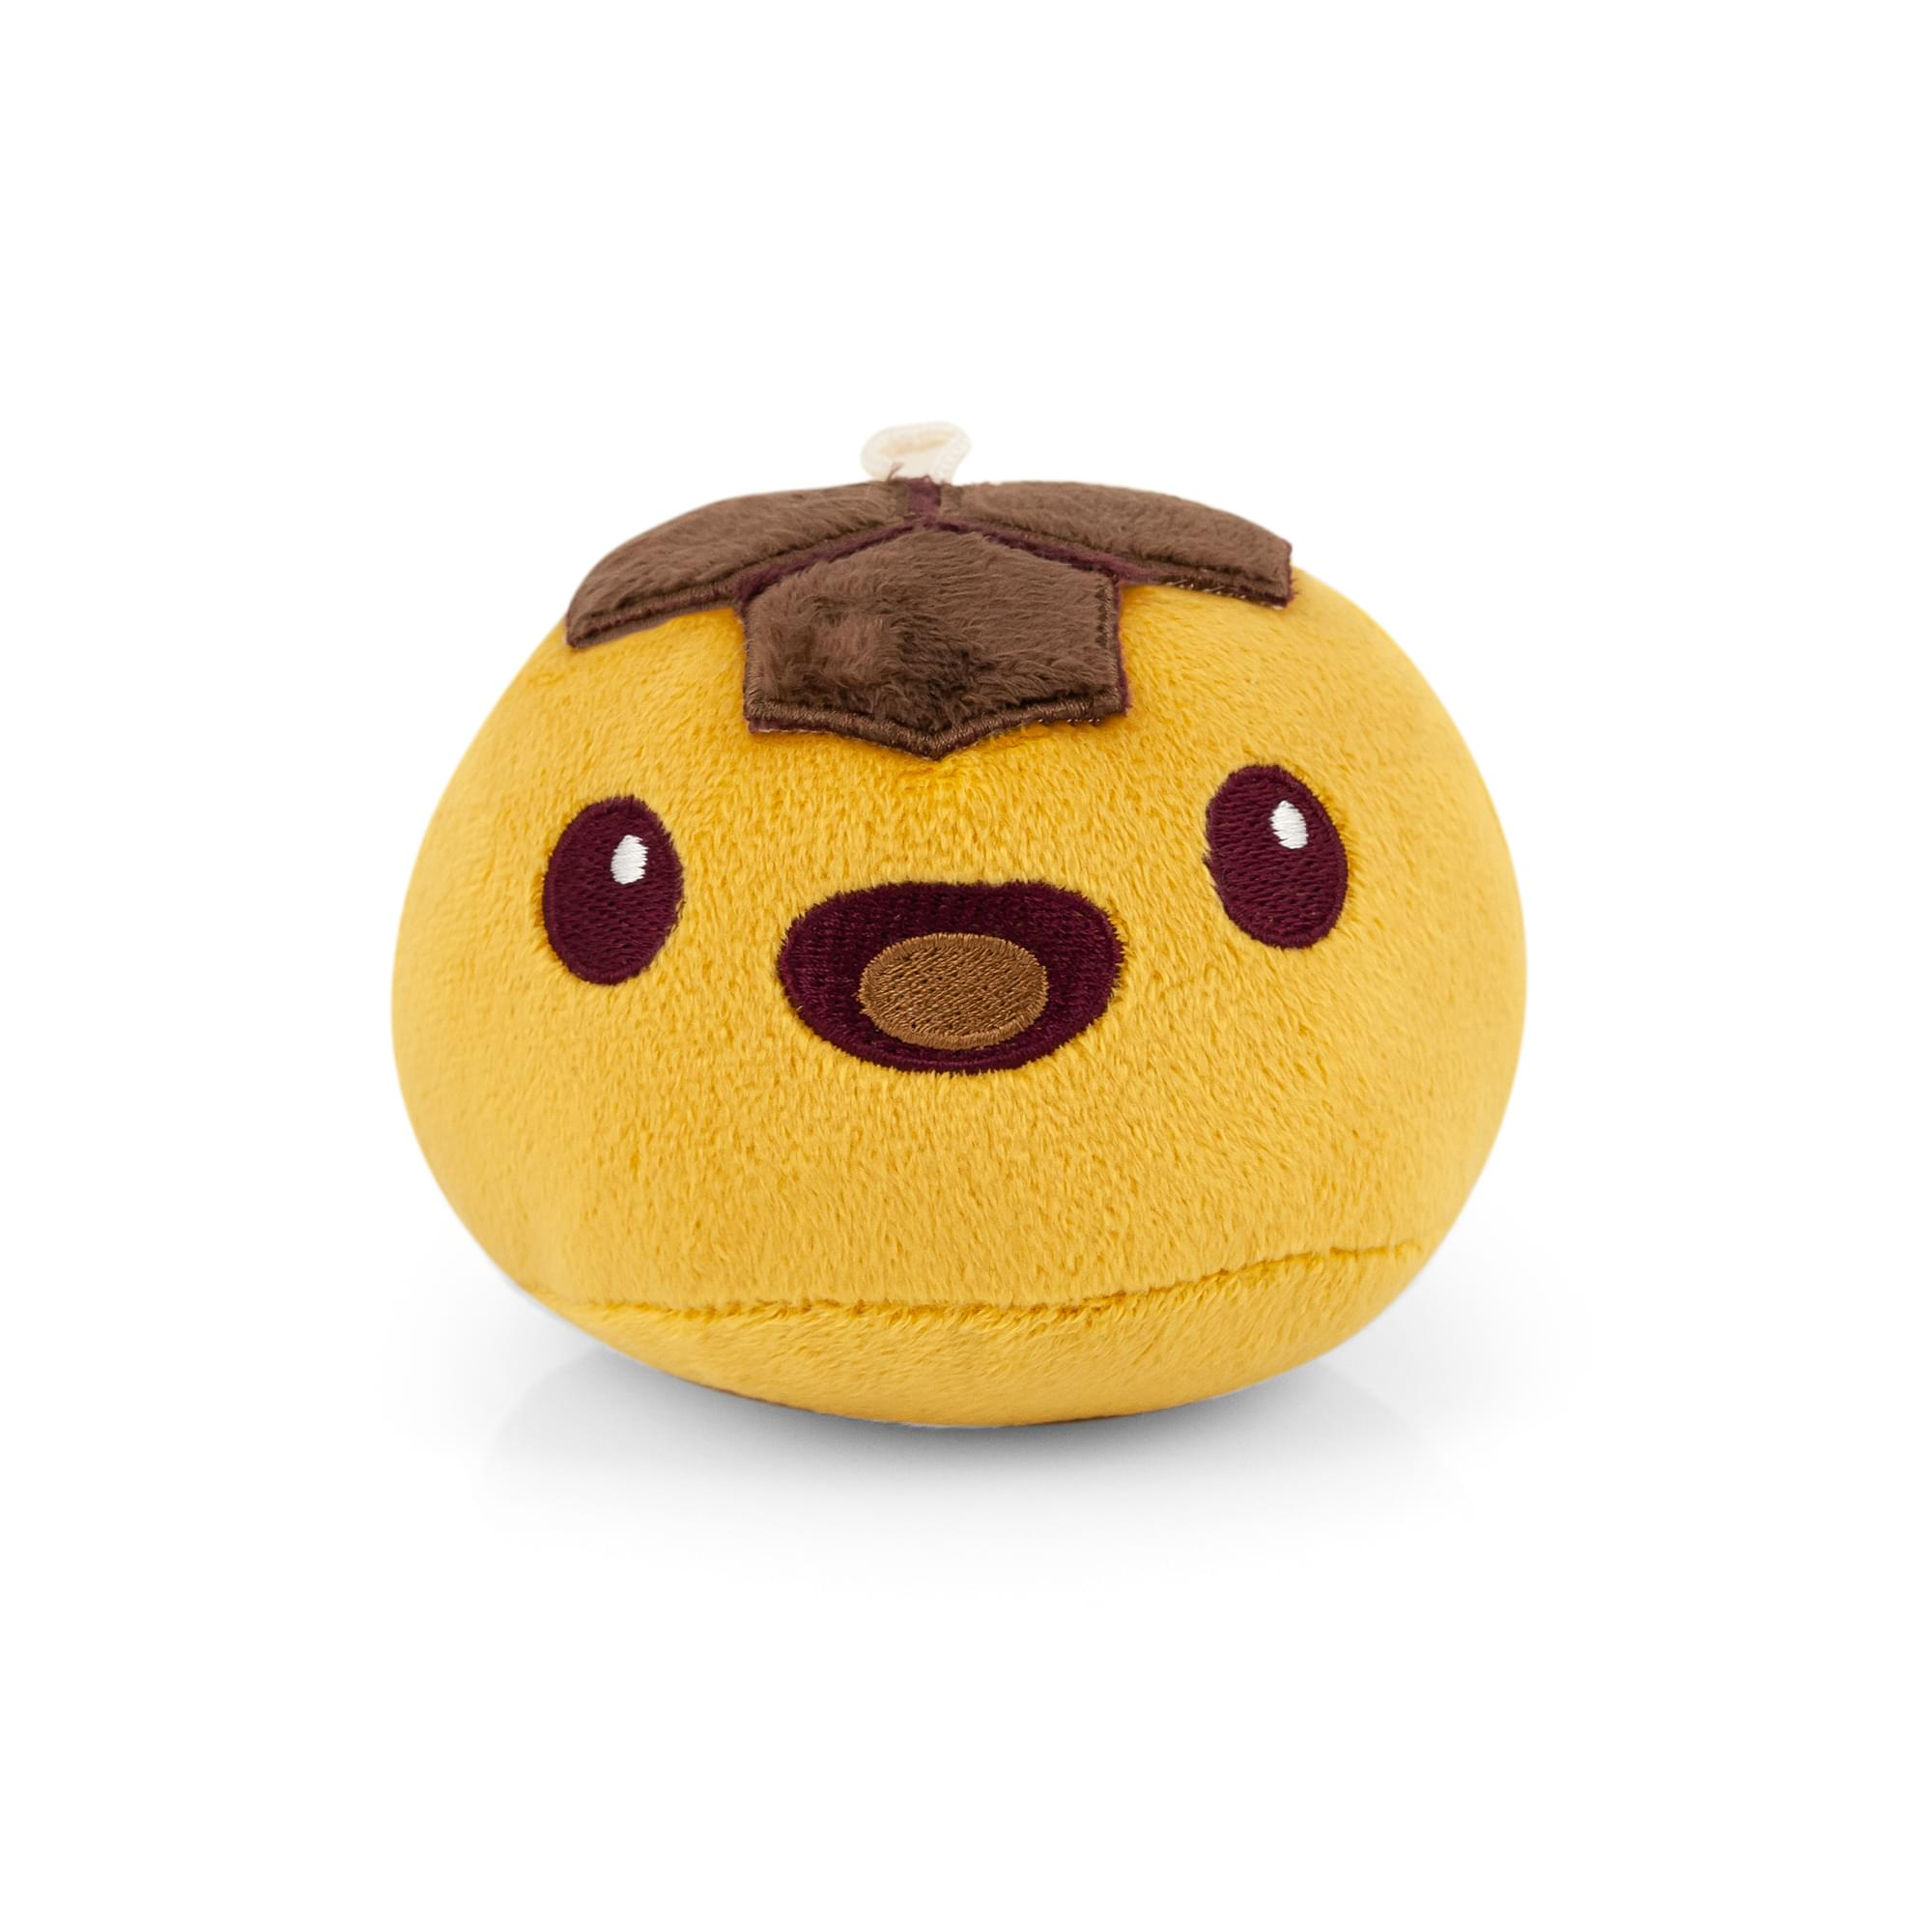 Details about Slime Rancher Plush Toy Bean Bag Plushie | Honey Slime, by  Imaginary People